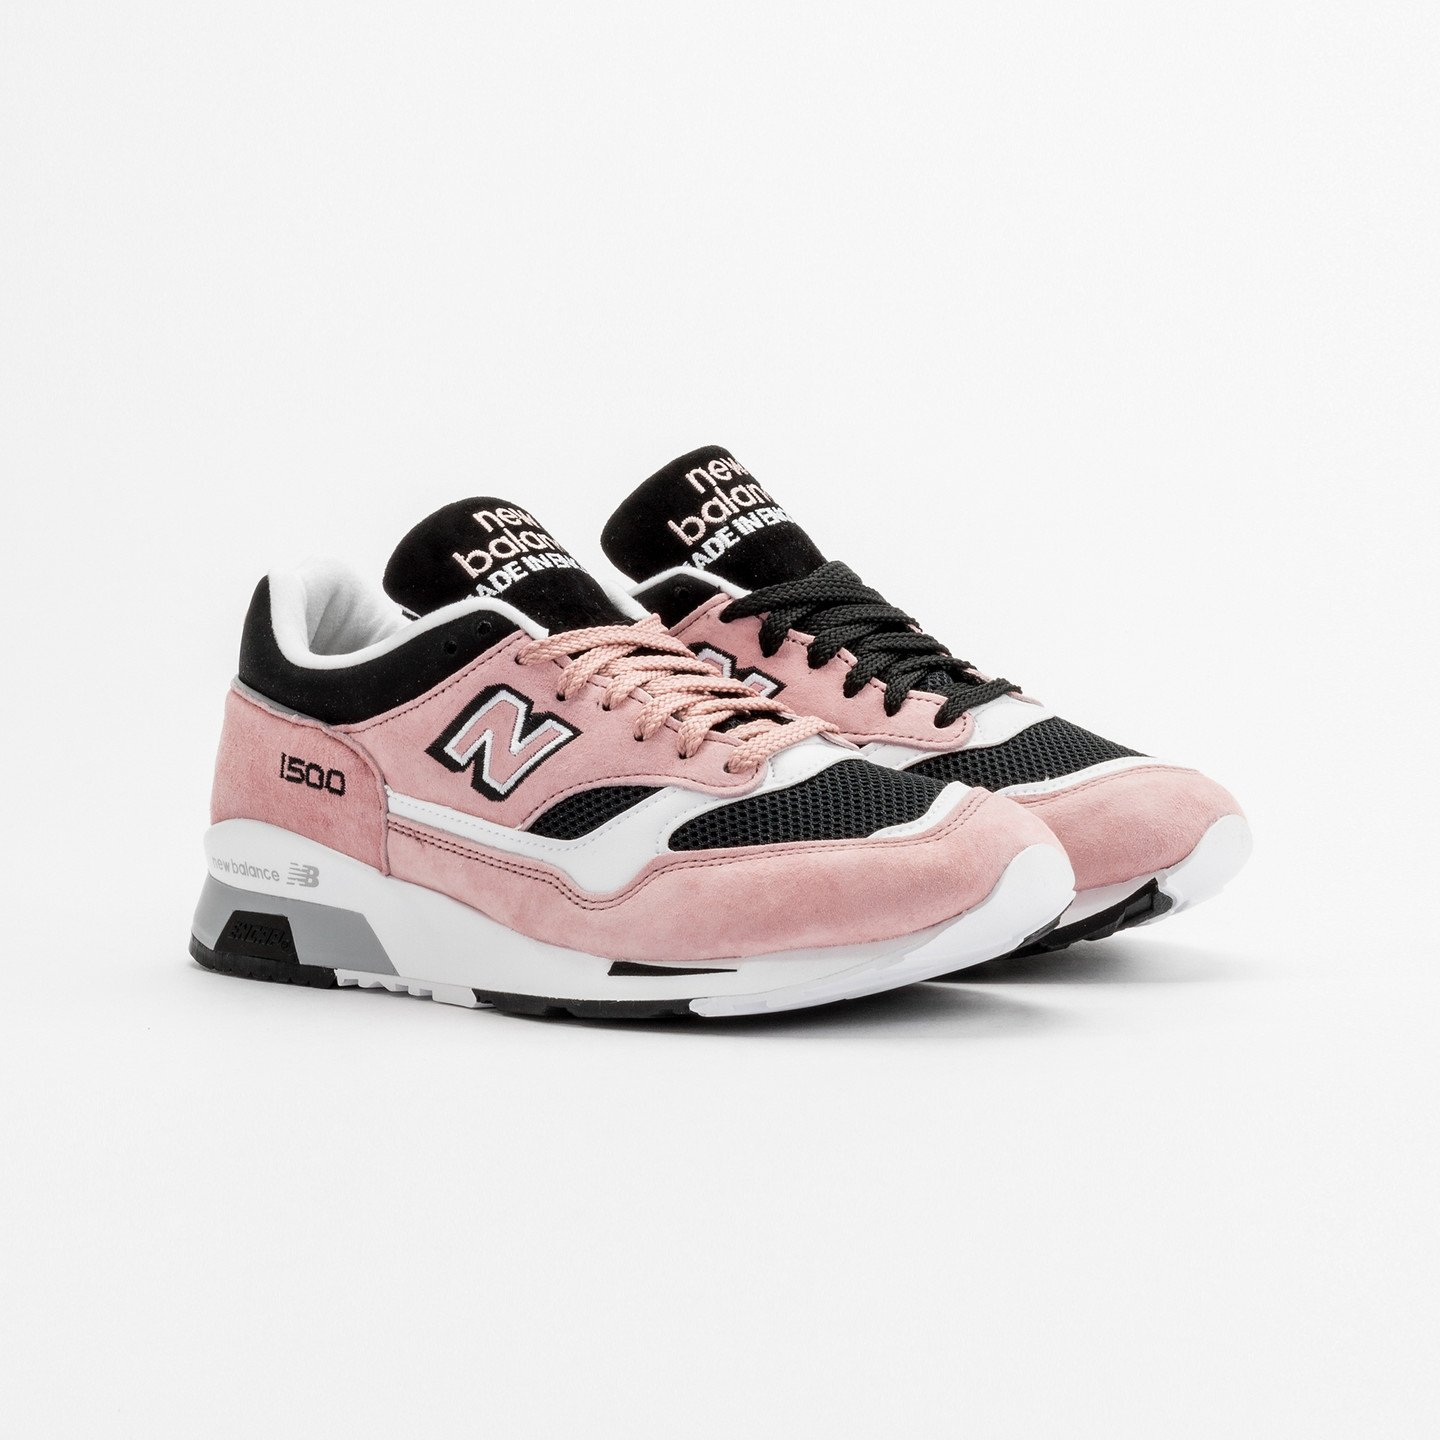 New Balance M1500 MPK - Made in England Pink / Black / White M1500MPK-45